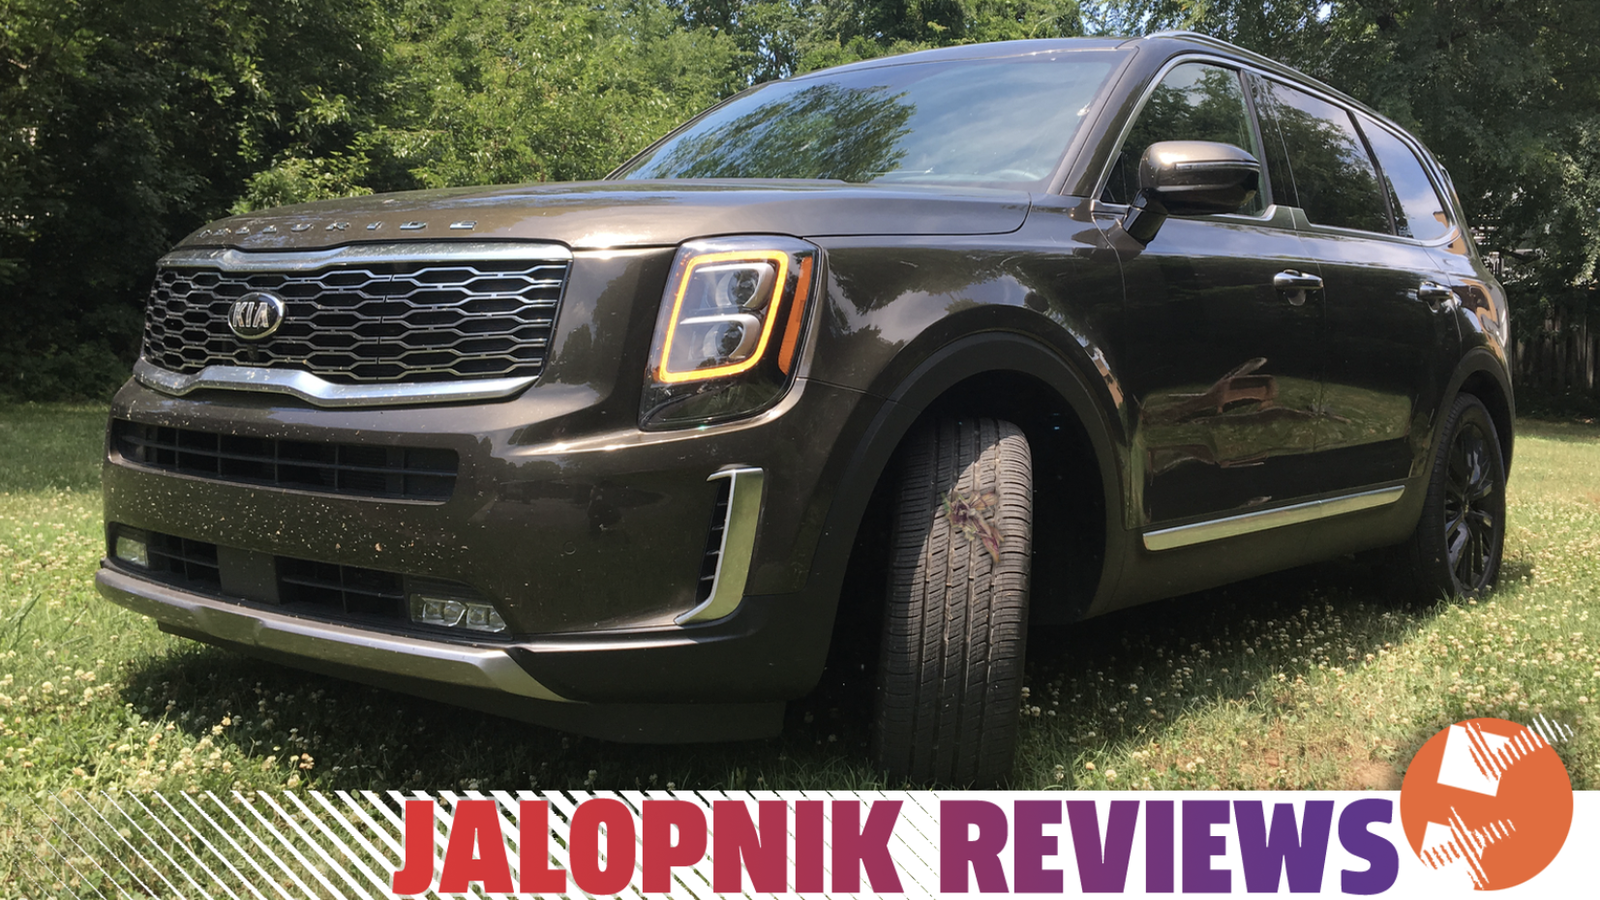 The 2020 Kia Telluride Is a Pretty Nice SUV to Drive and Sleep In